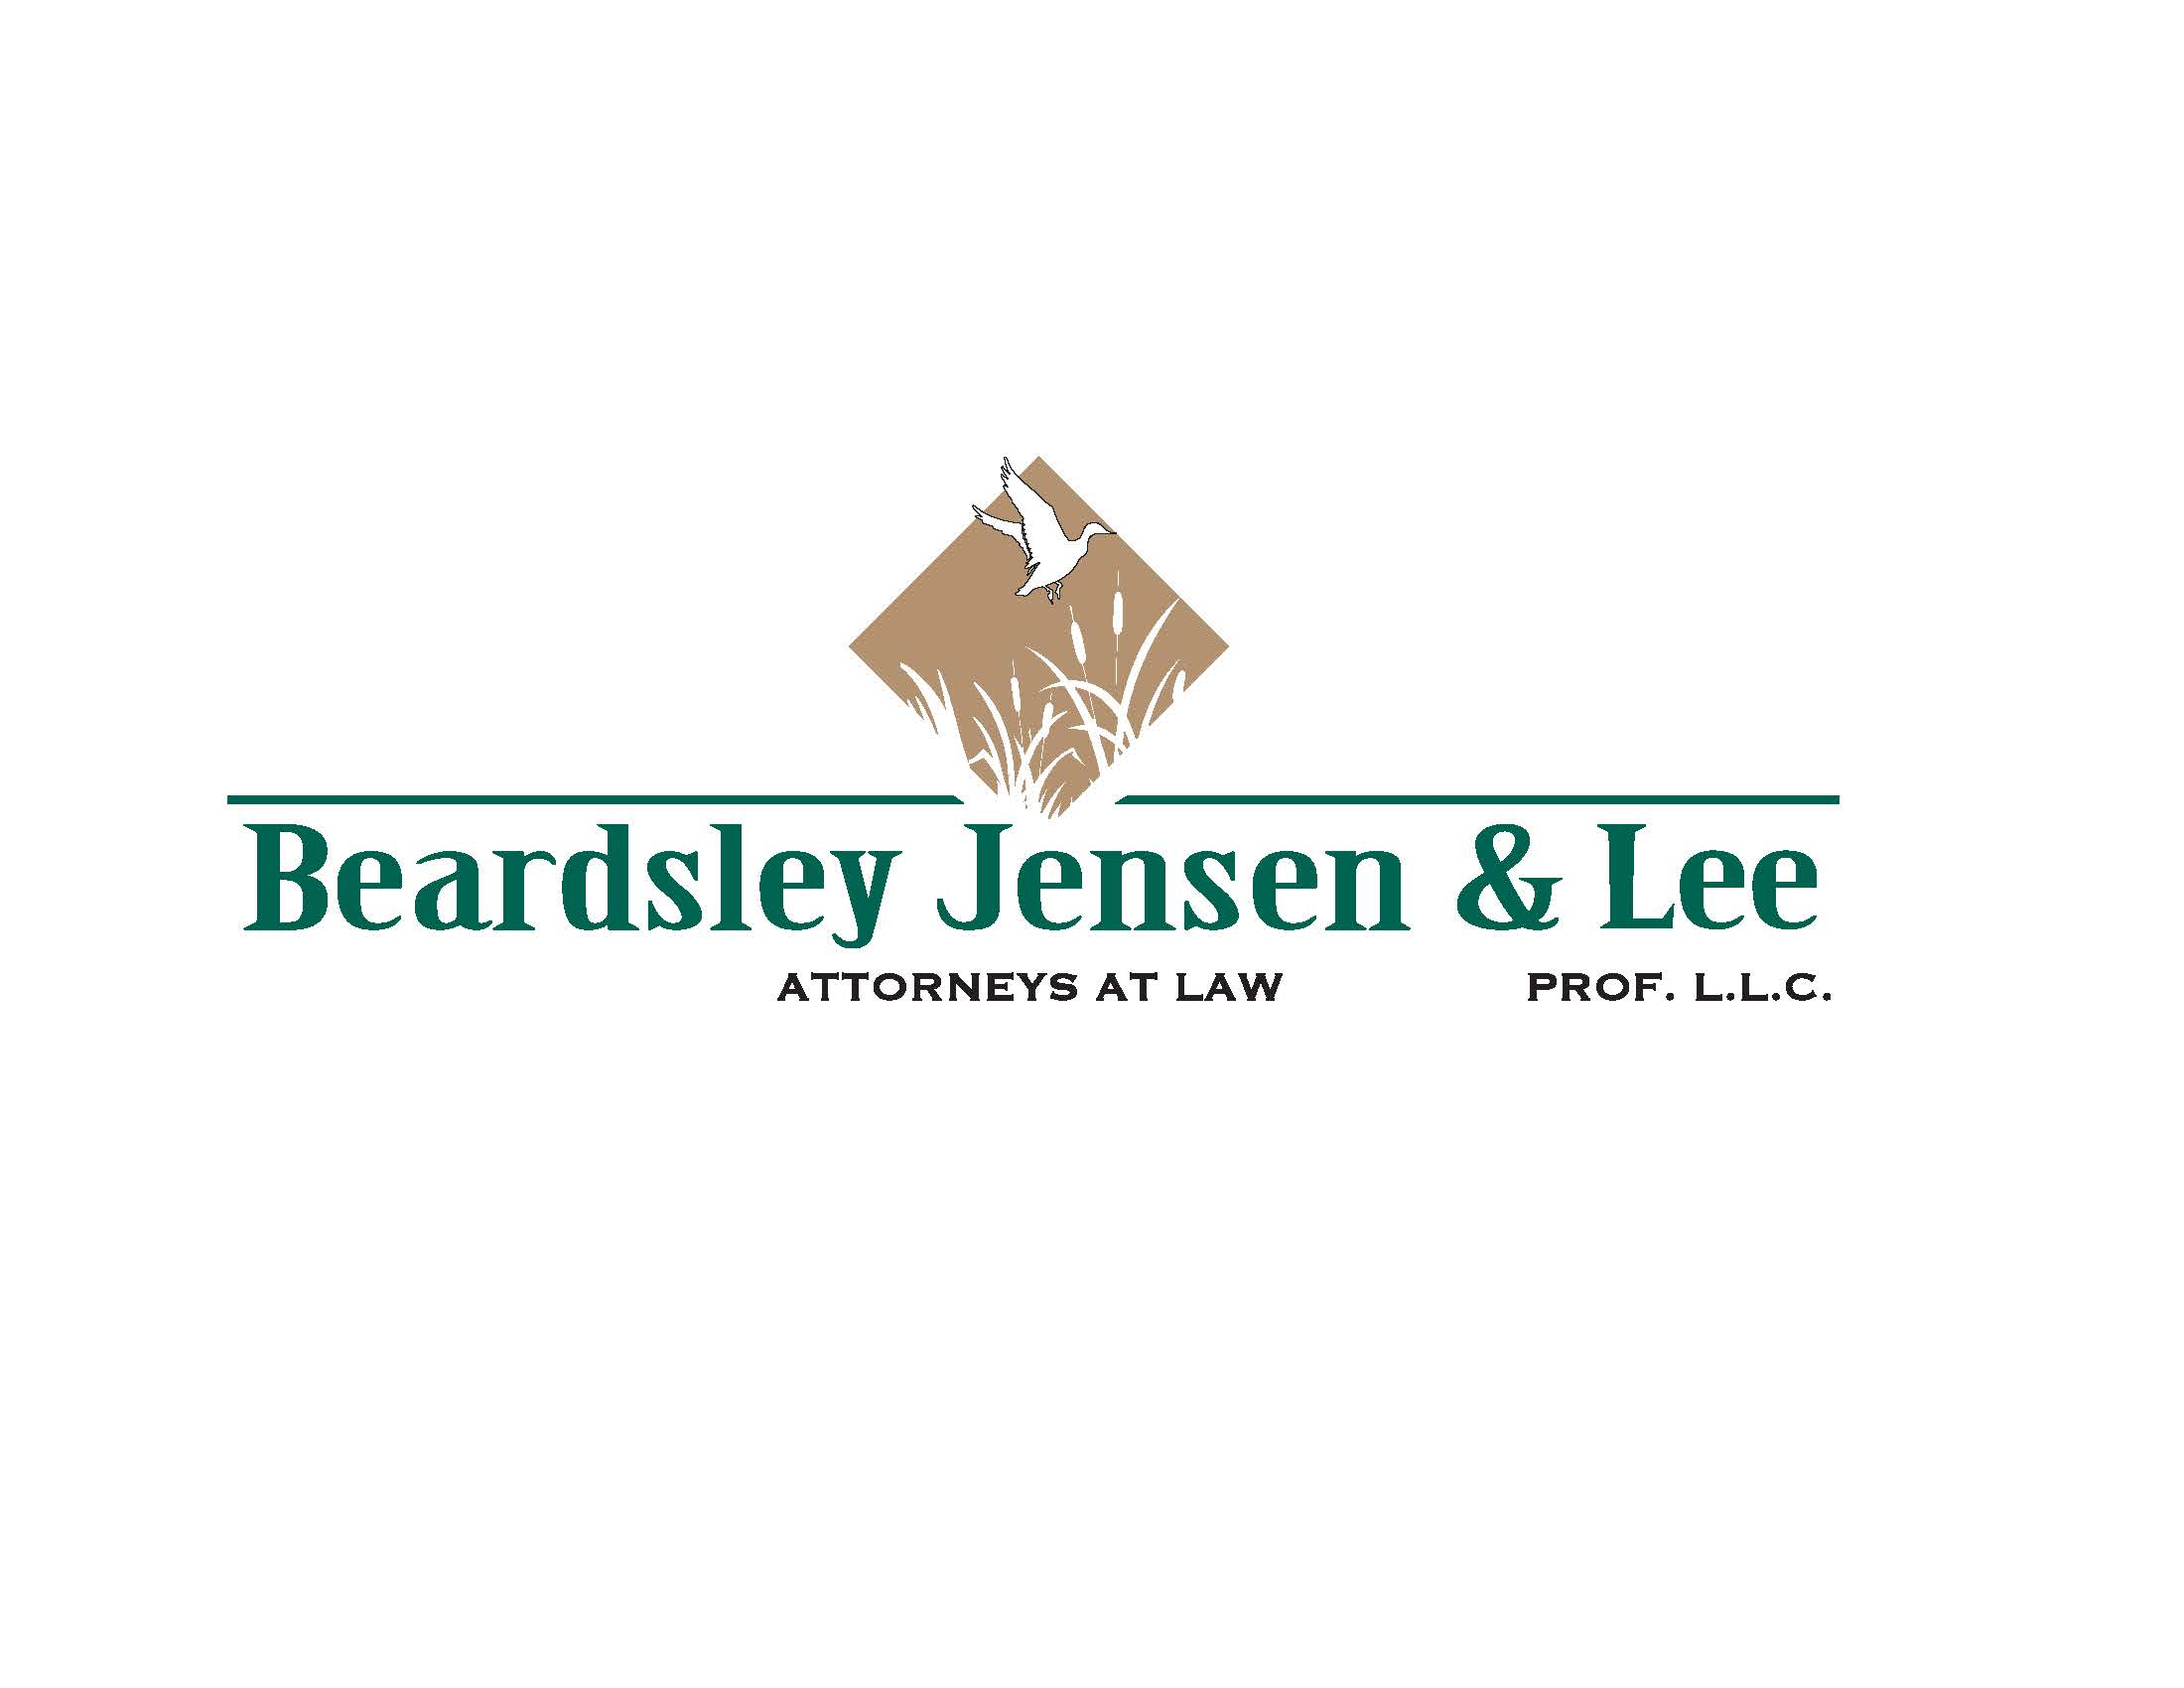 Beardsley Jensen & Lee, PLLC